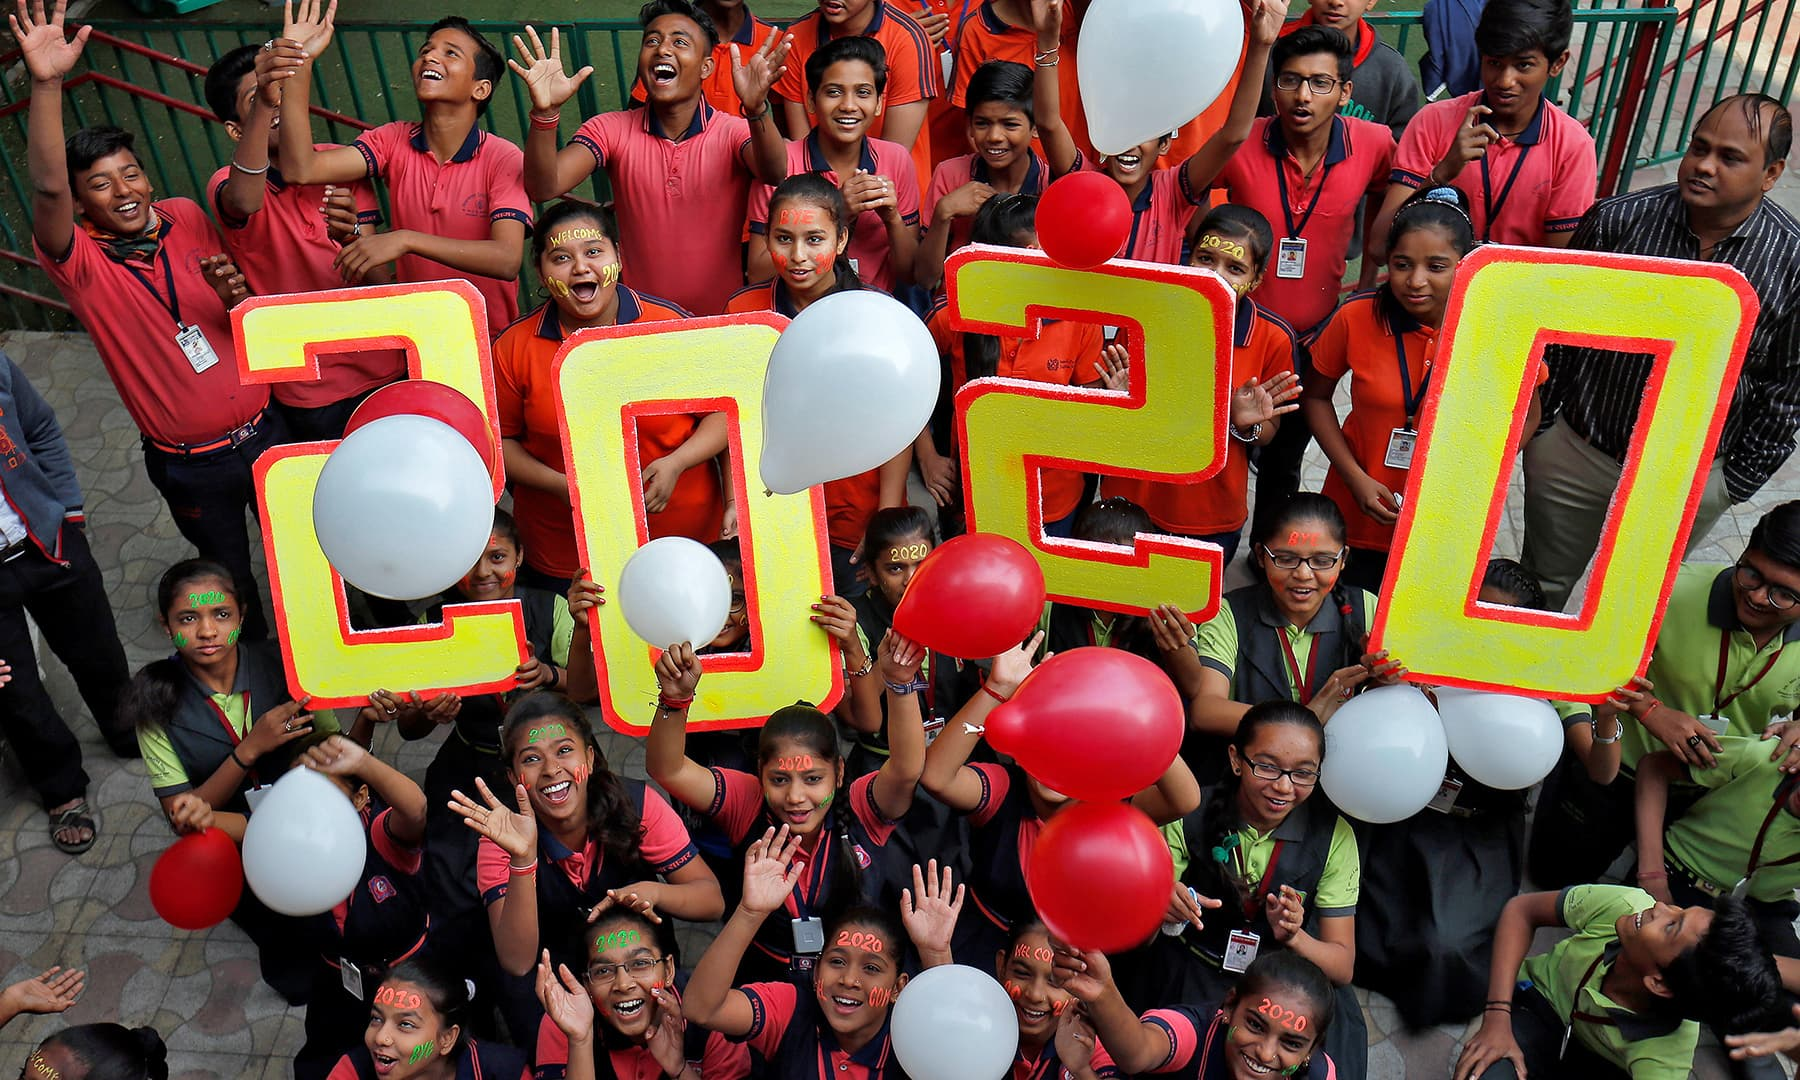 Students cheer as they release balloons during celebrations to welcome the New Year at a school in Ahmedabad, India, on Tuesday. — Reuters